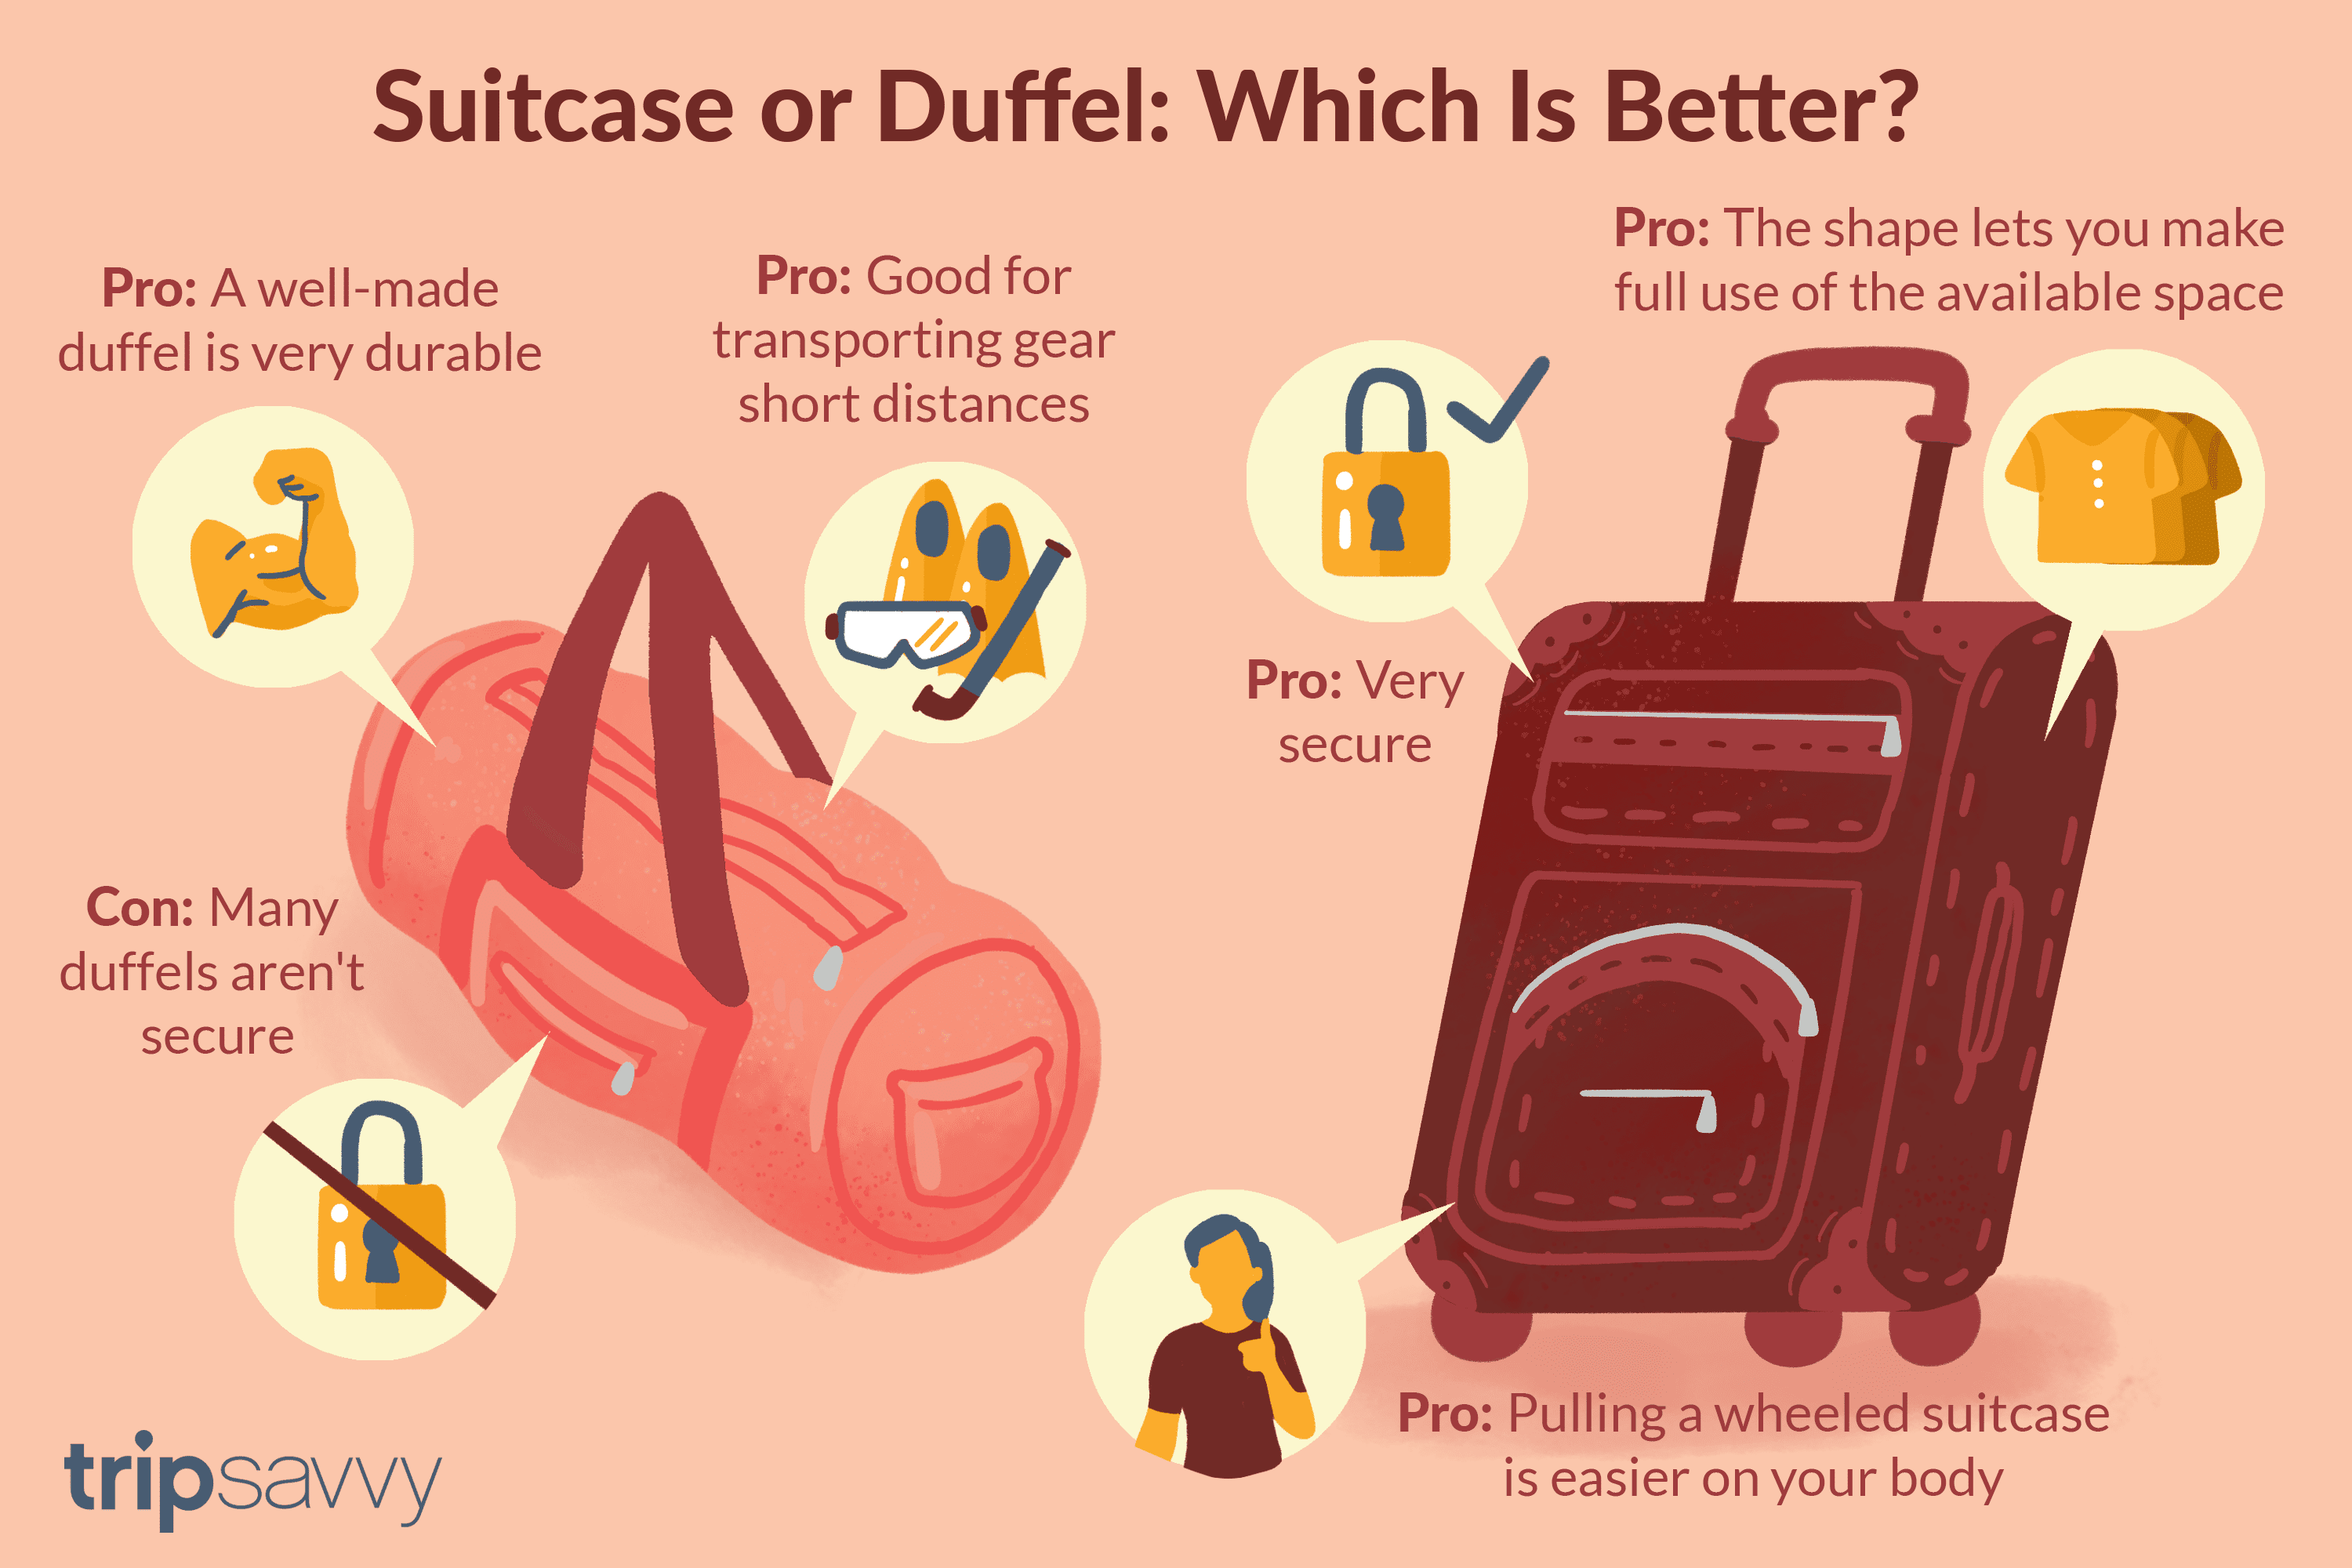 aa7a1c74e37c Should You Take a Duffel or Suitcase on Your Next Trip